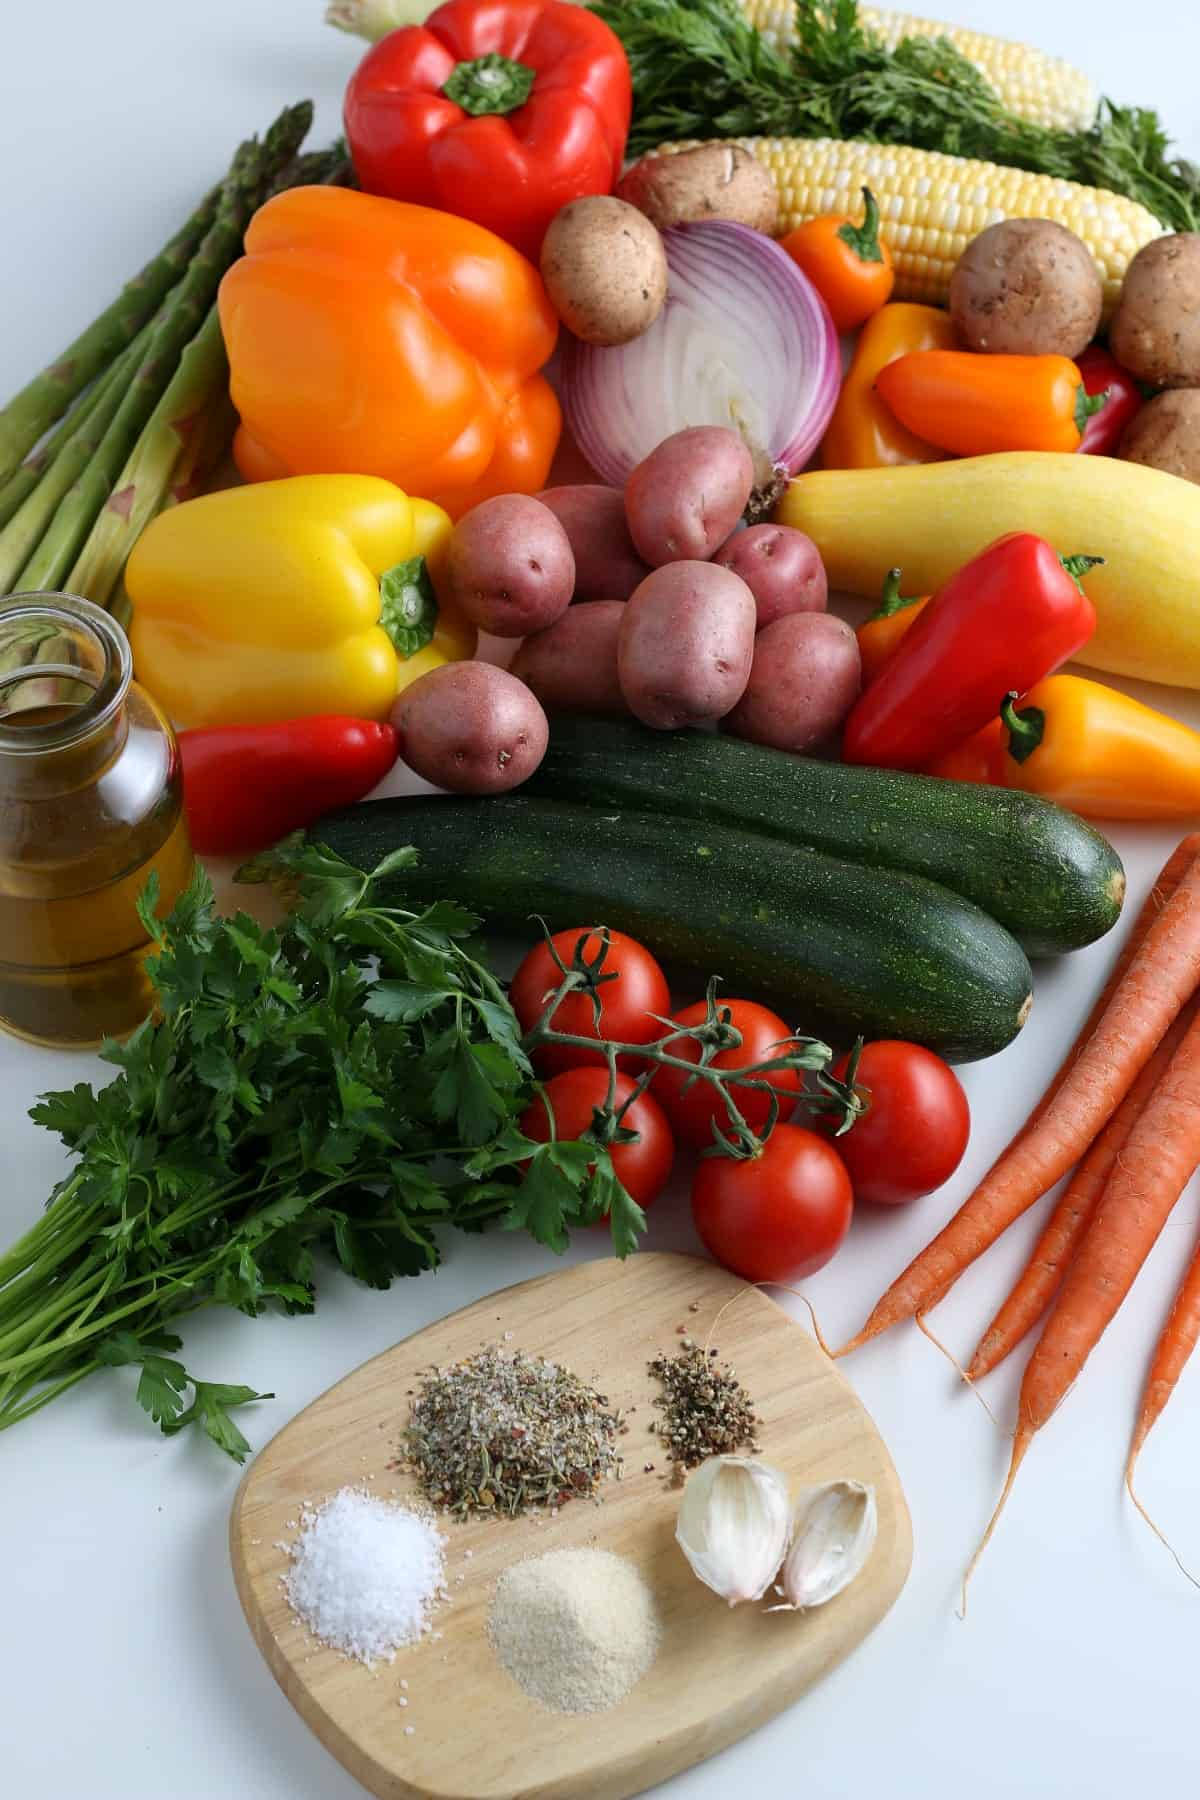 Overhead view of a colorful array of fresh vegetables and marinade ingredients against a white background..